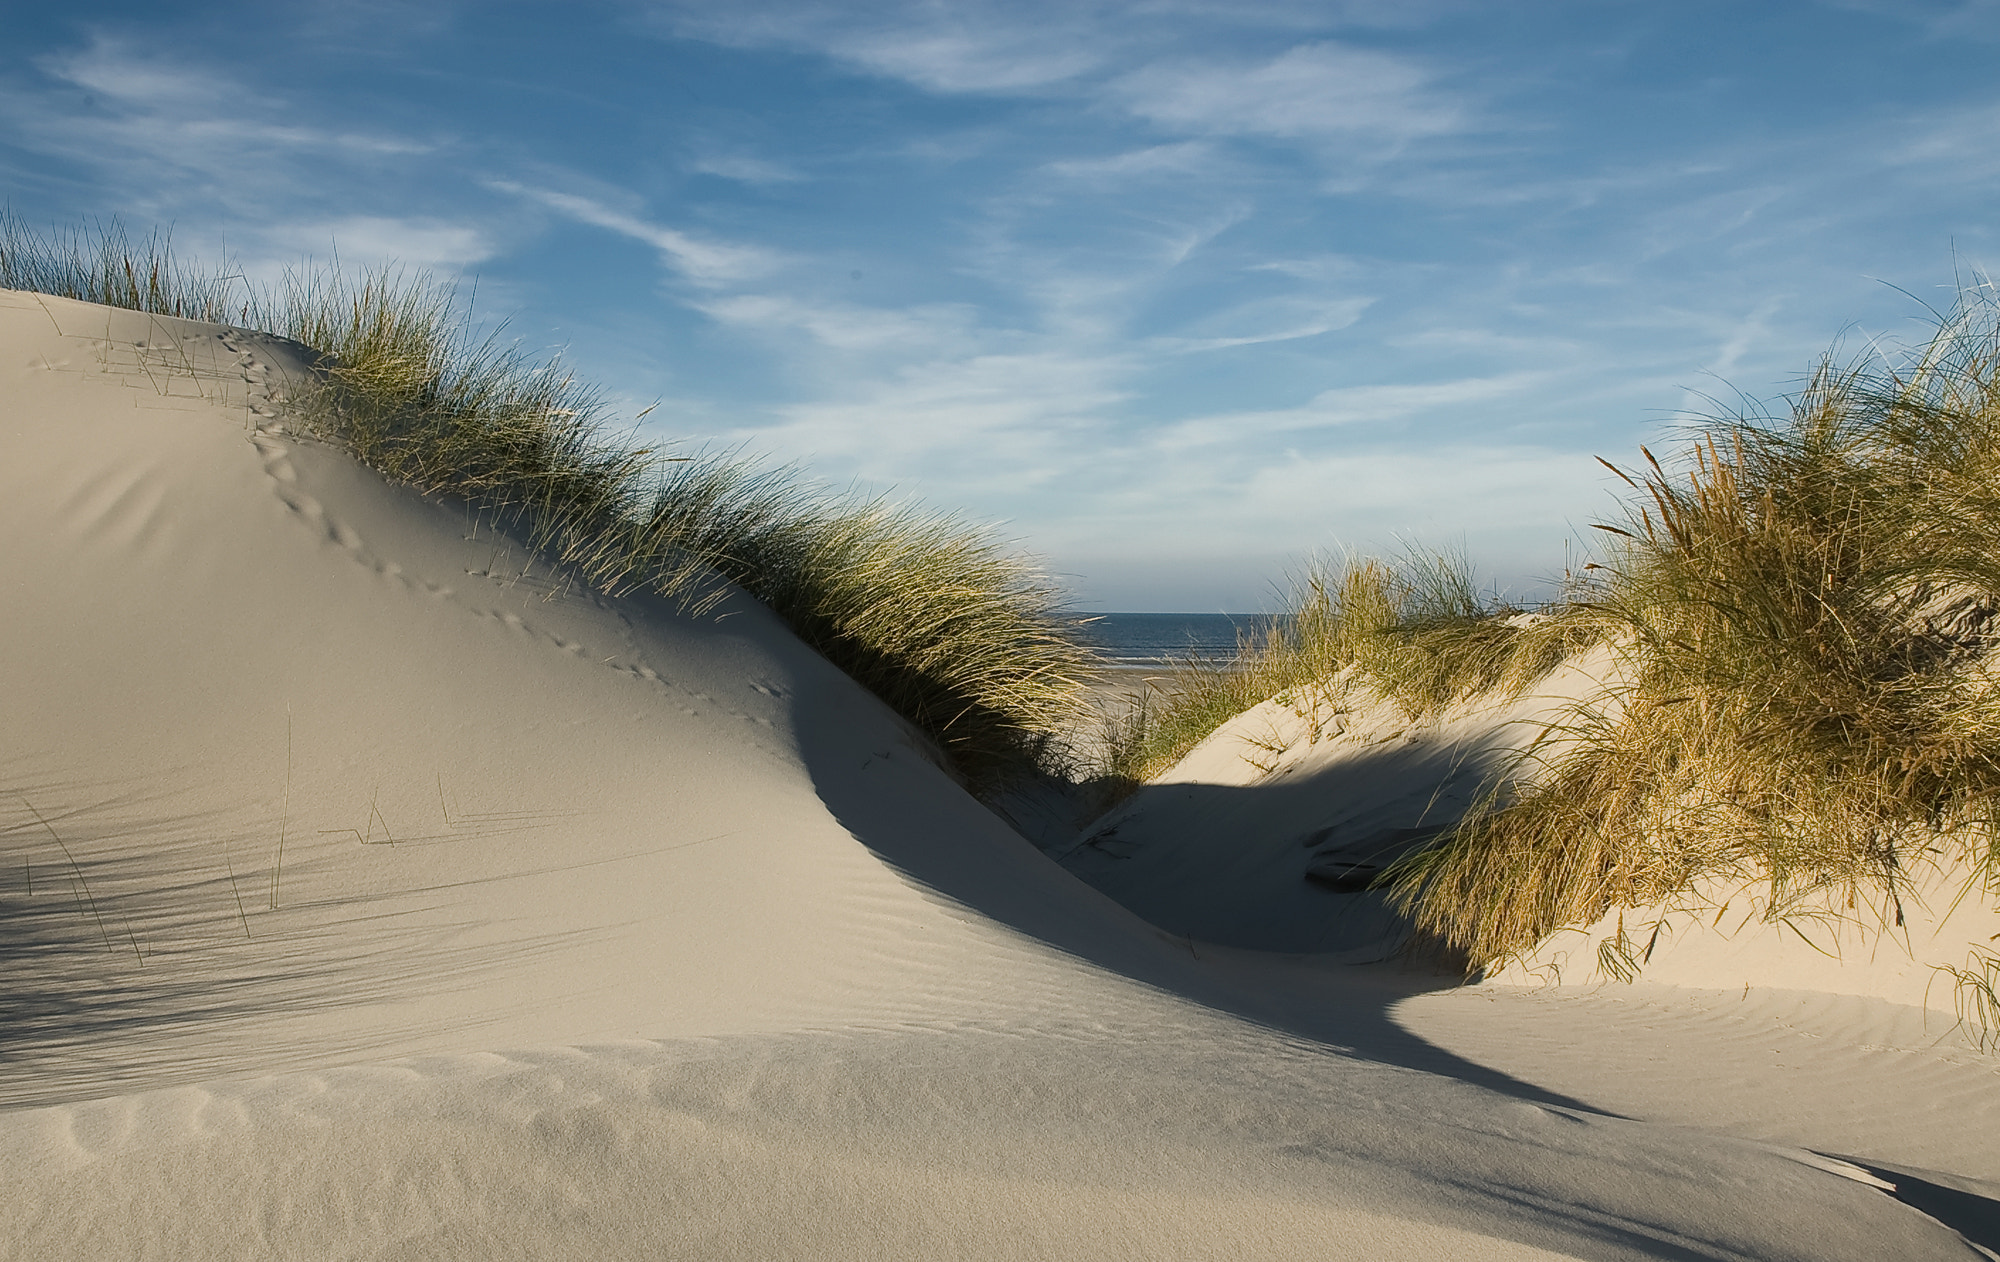 Photograph Onto the Beach by Daniel Bosma on 500px